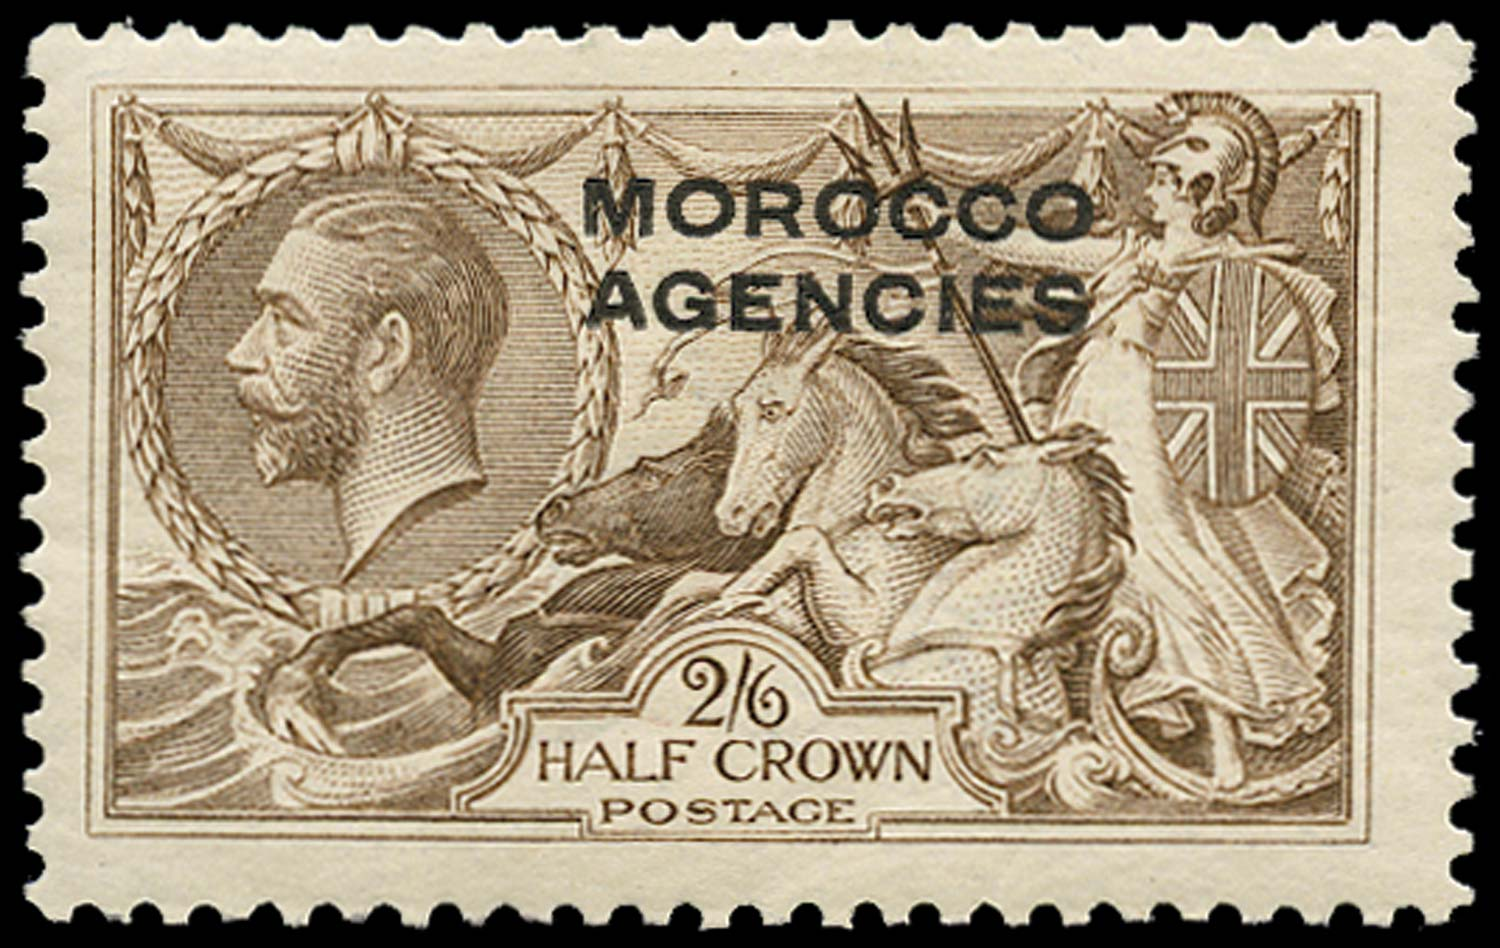 MOROCCO AGENCIES 1914  SG53 Mint